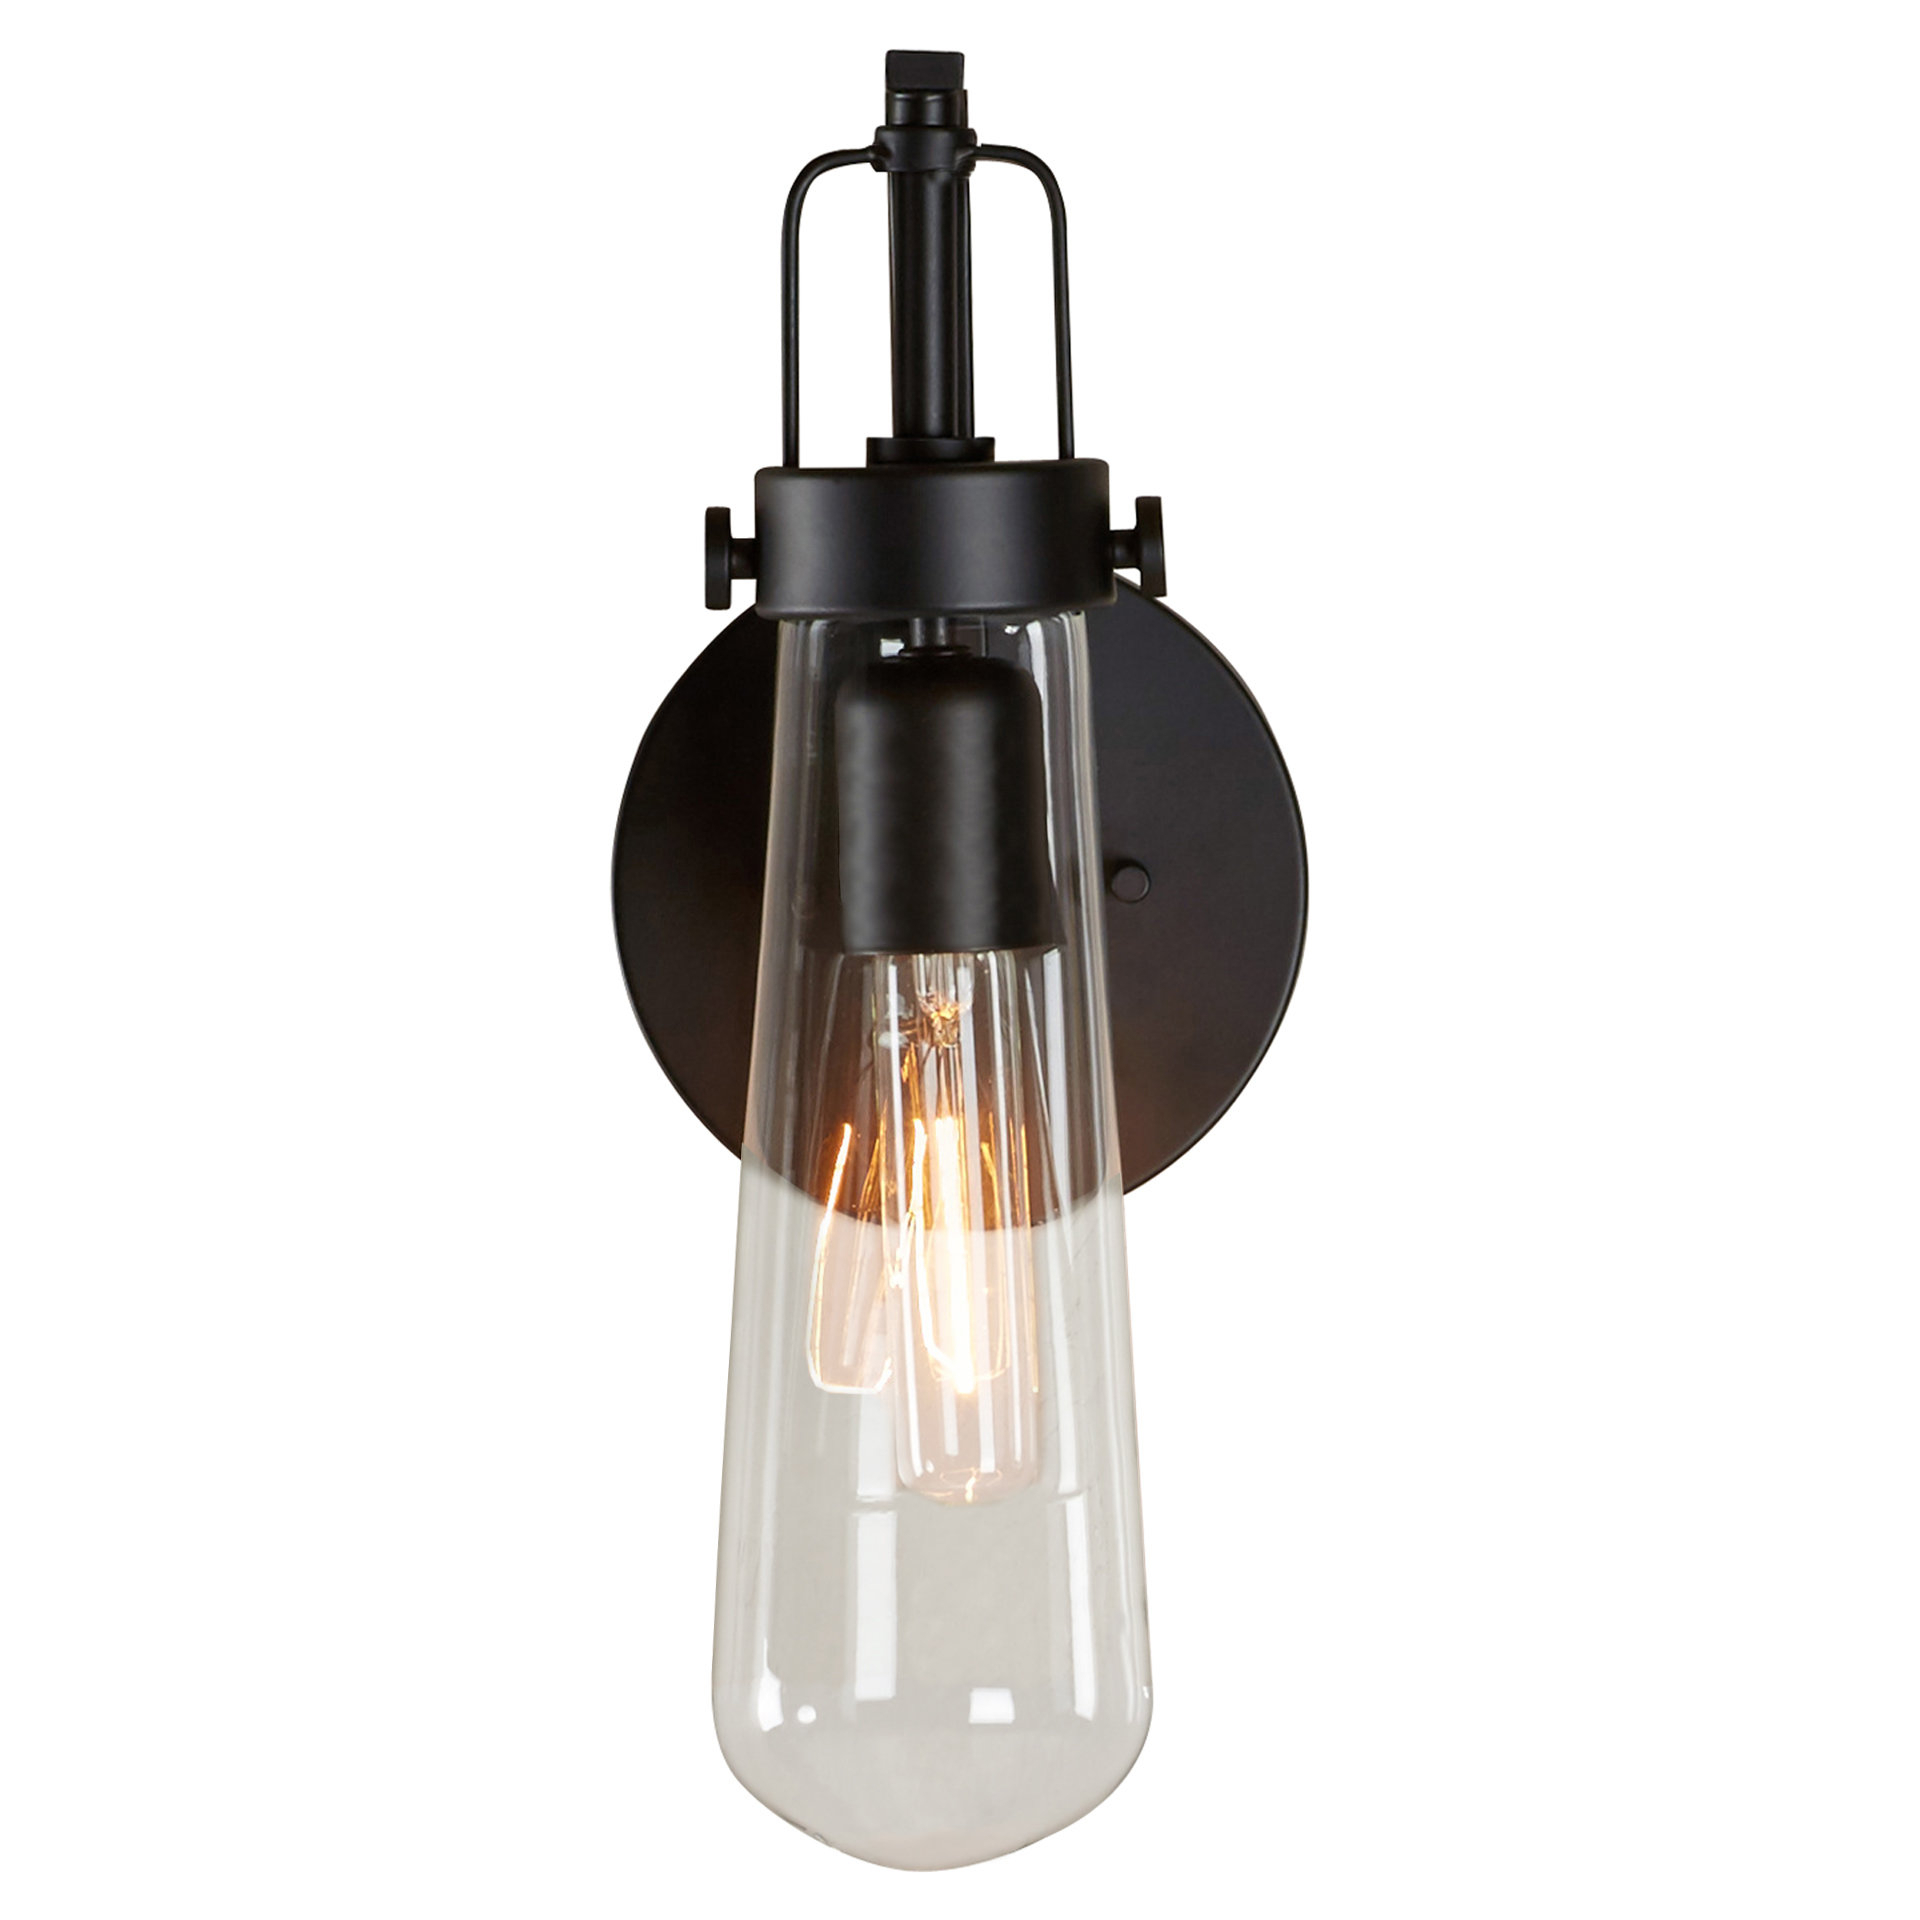 Modern & Contemporary Trent Austin Design Lighting | Allmodern Inside Bryker 1 Light Single Bulb Pendants (View 23 of 30)